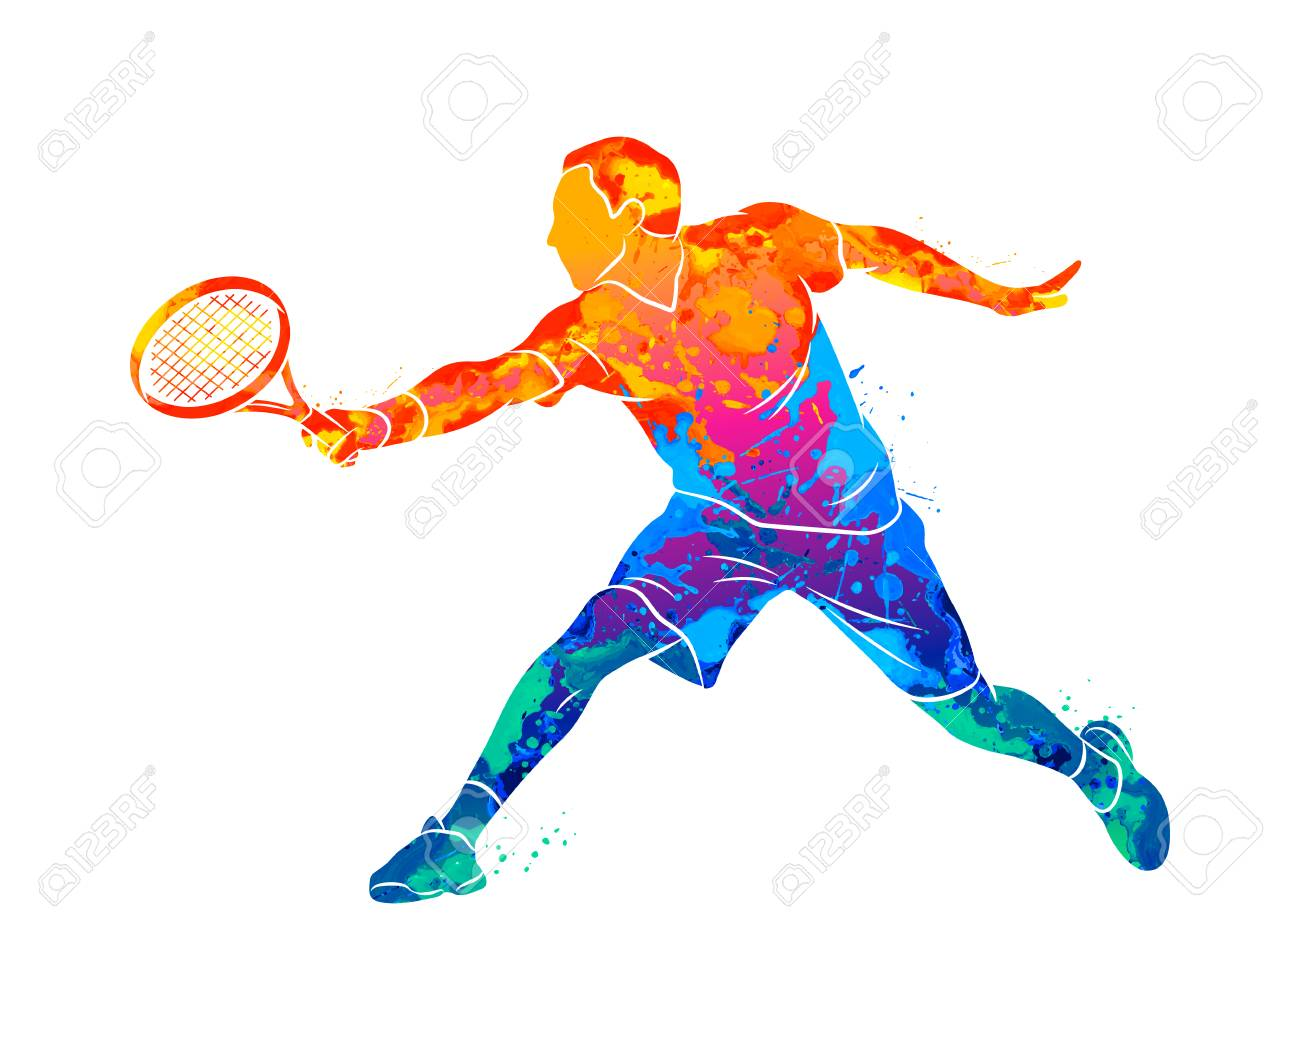 Abstract tennis player with a racket from splash of watercolors. Vector illustration of paints - 125888167